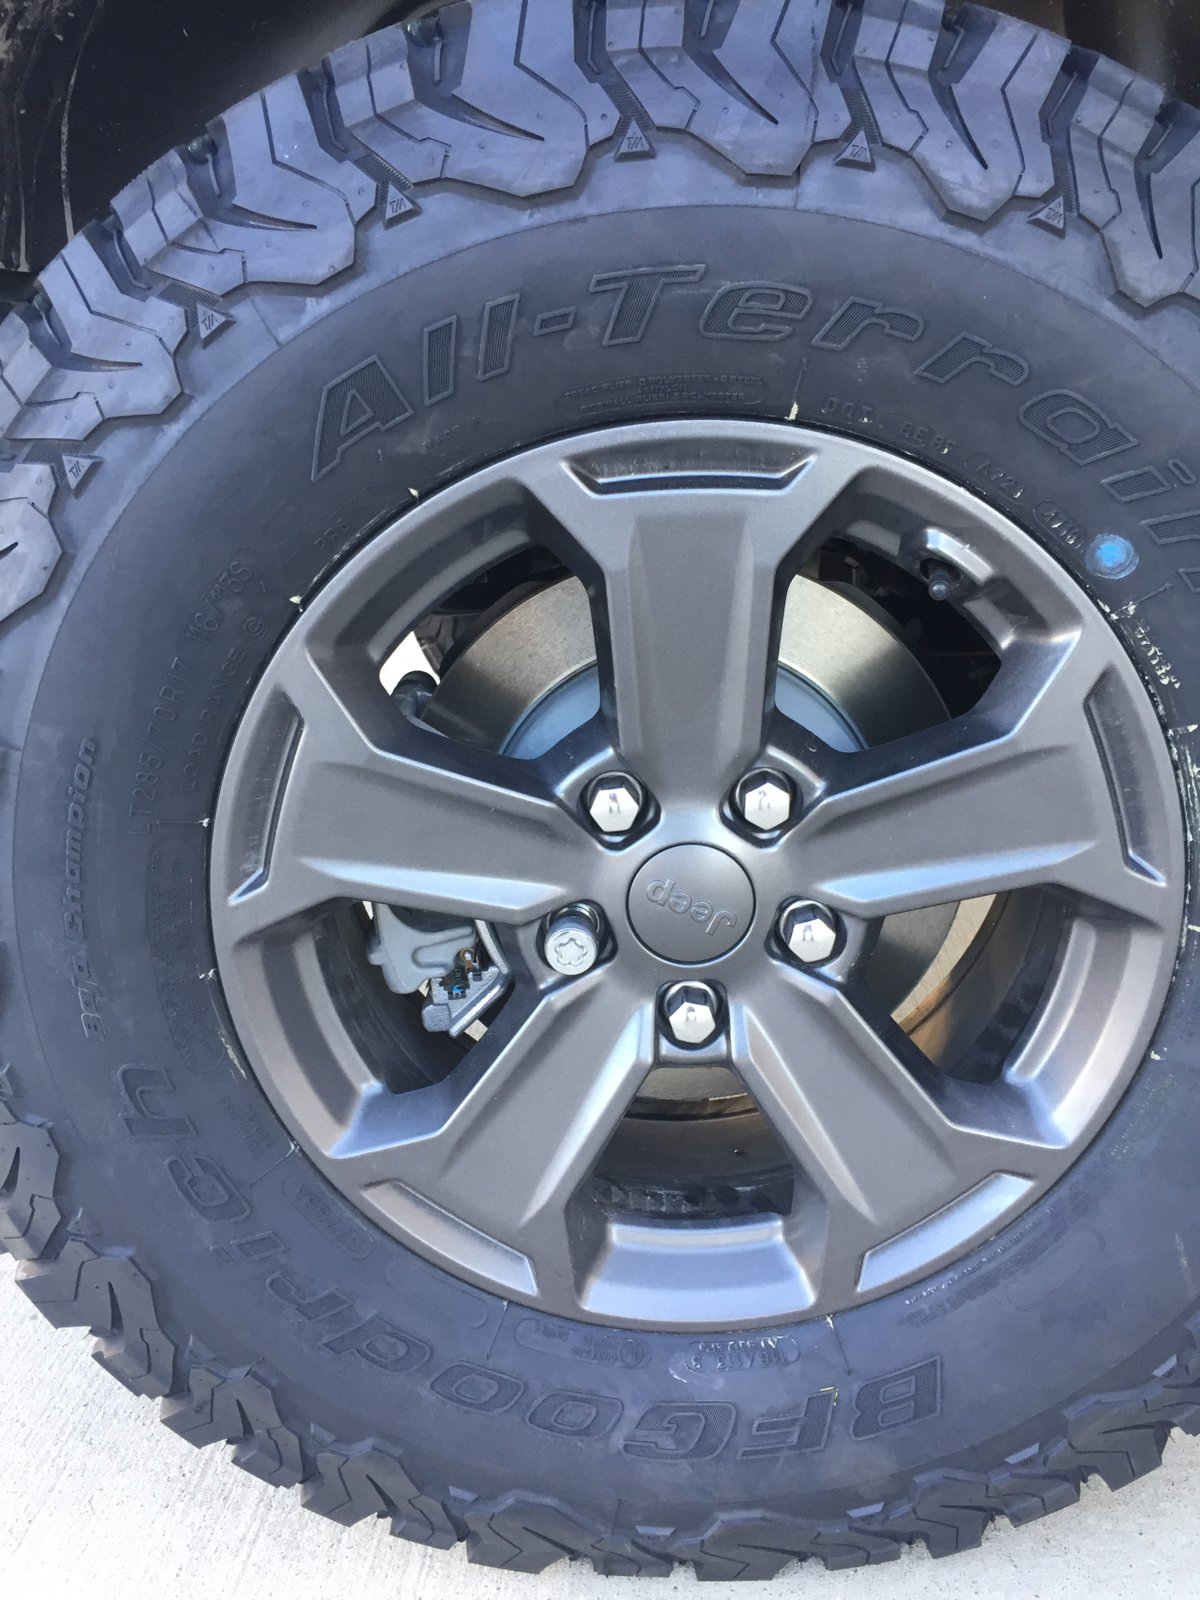 Does Lug Nut Heft Size Other Than Thread Size Type Matter Jeep Wrangler Tj Forum